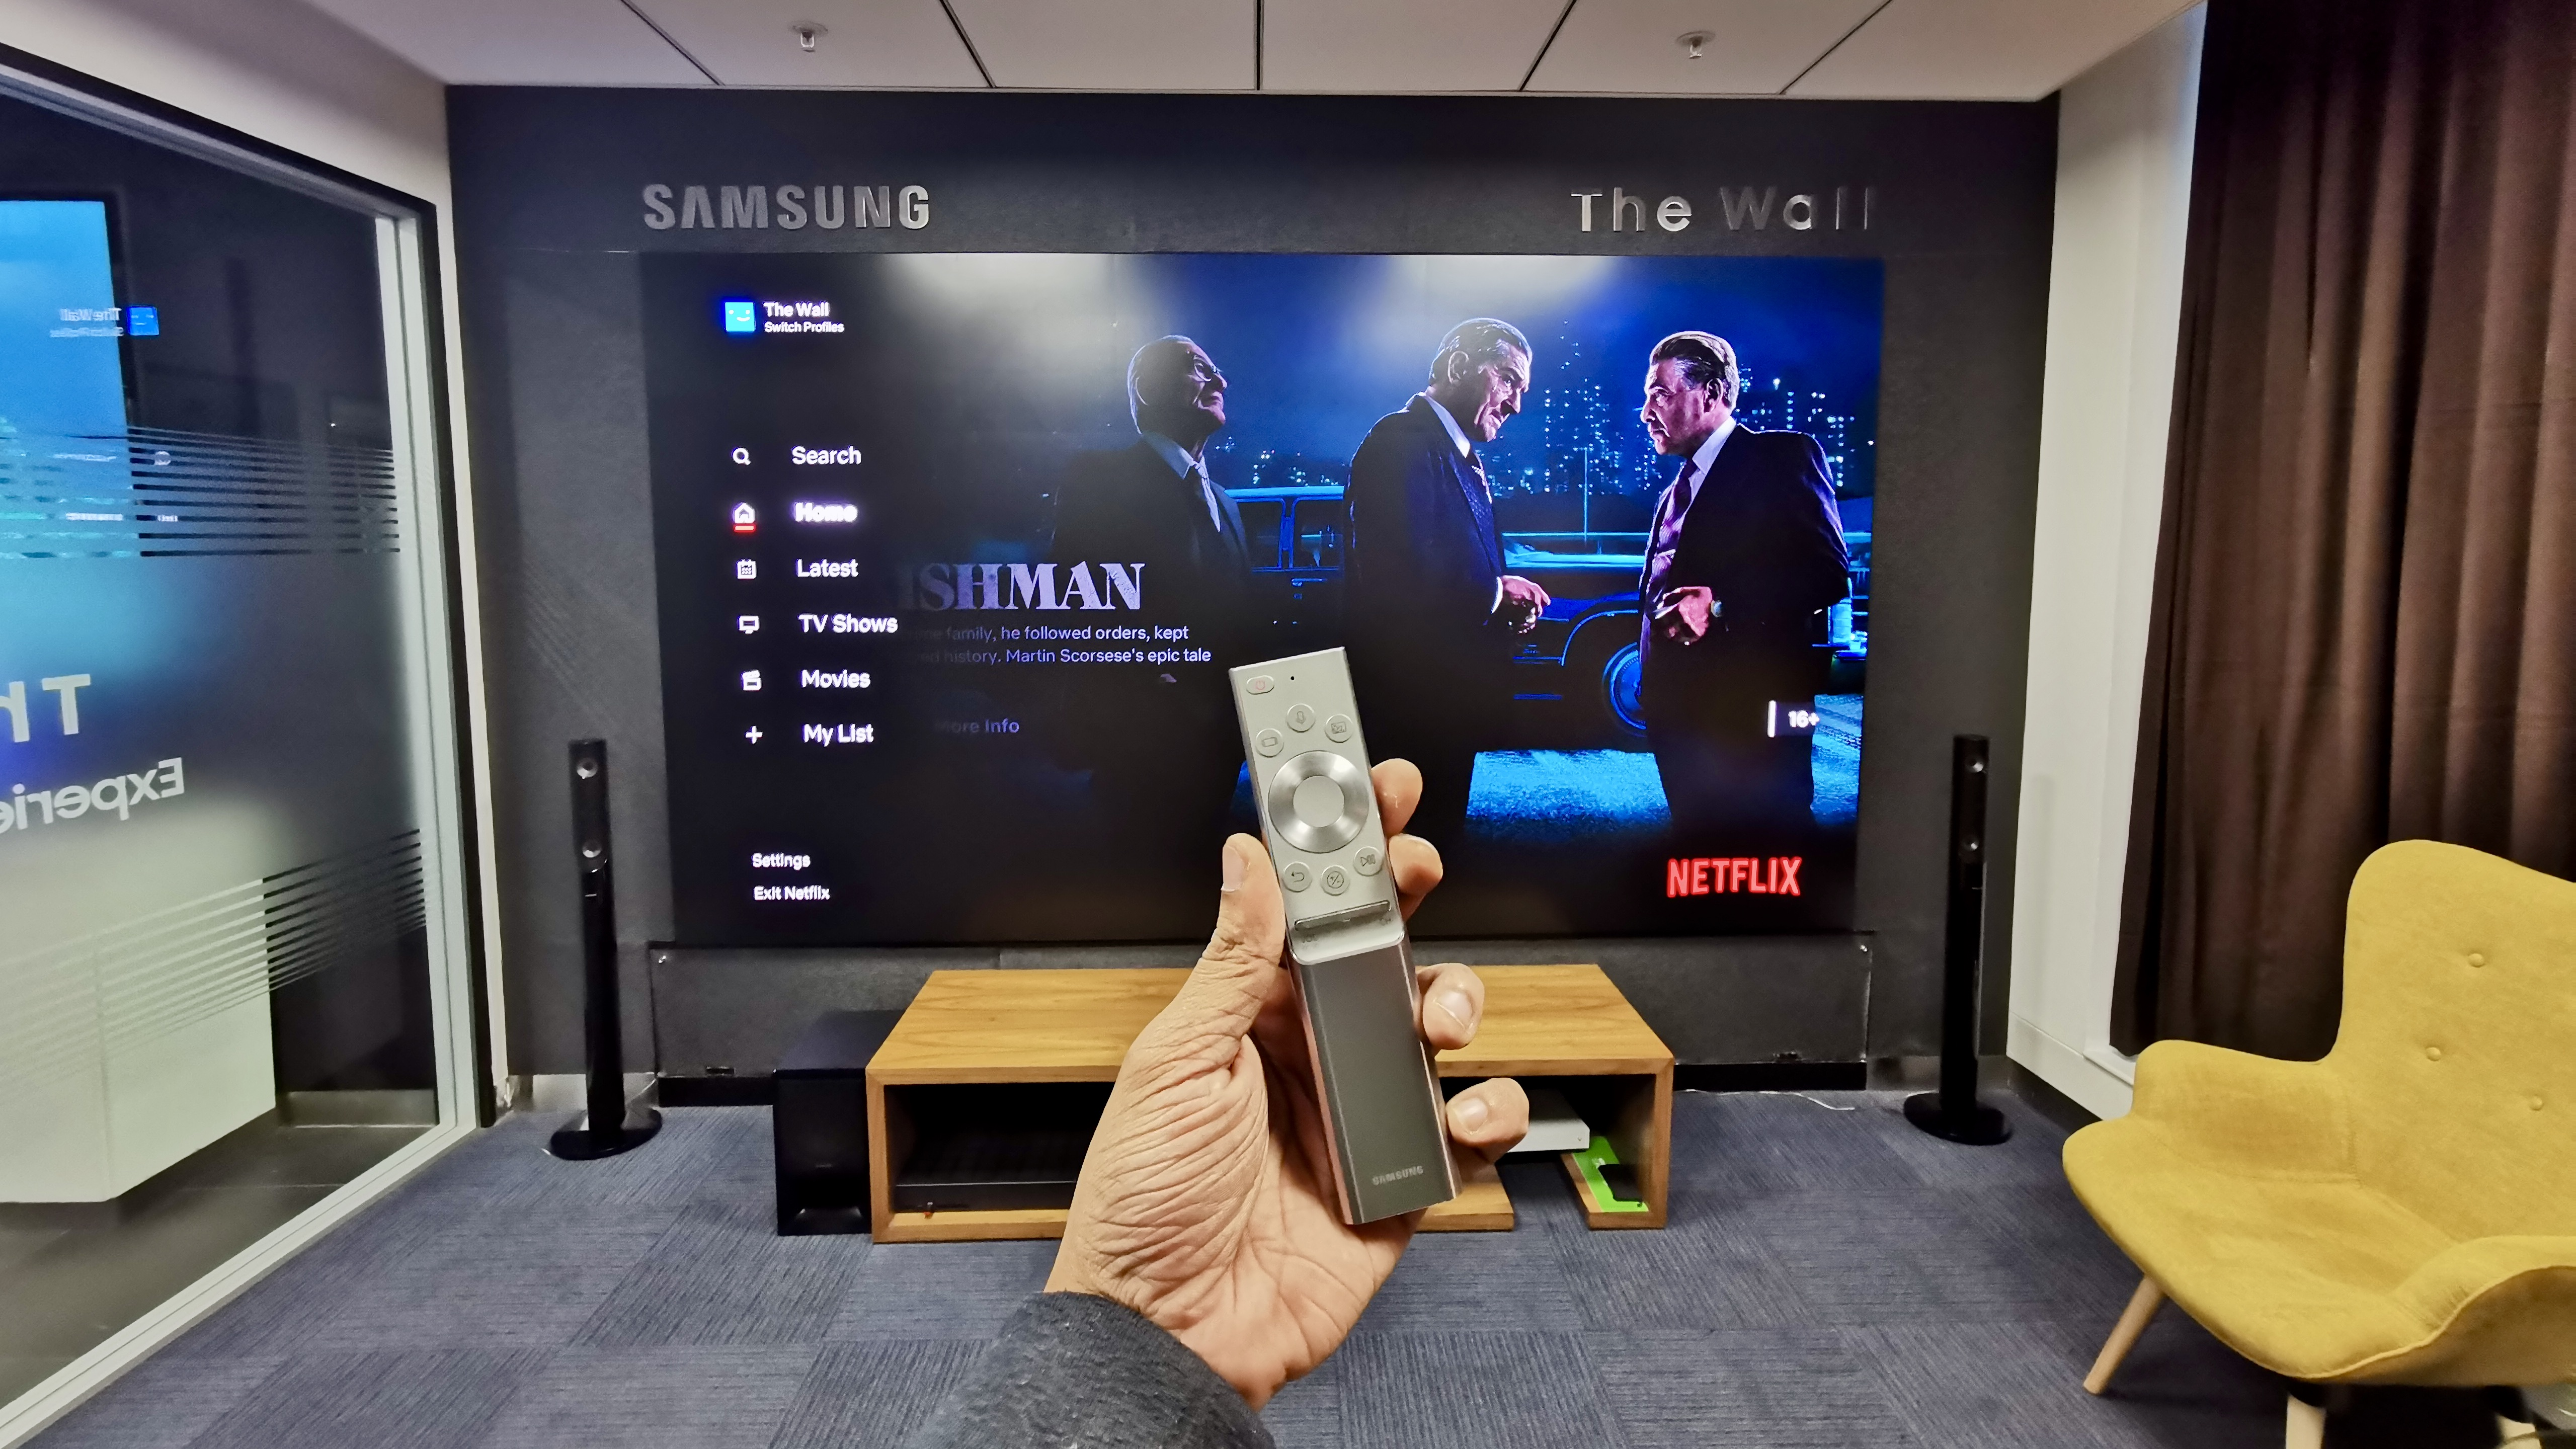 Samsung The Wall MicroLED: First look